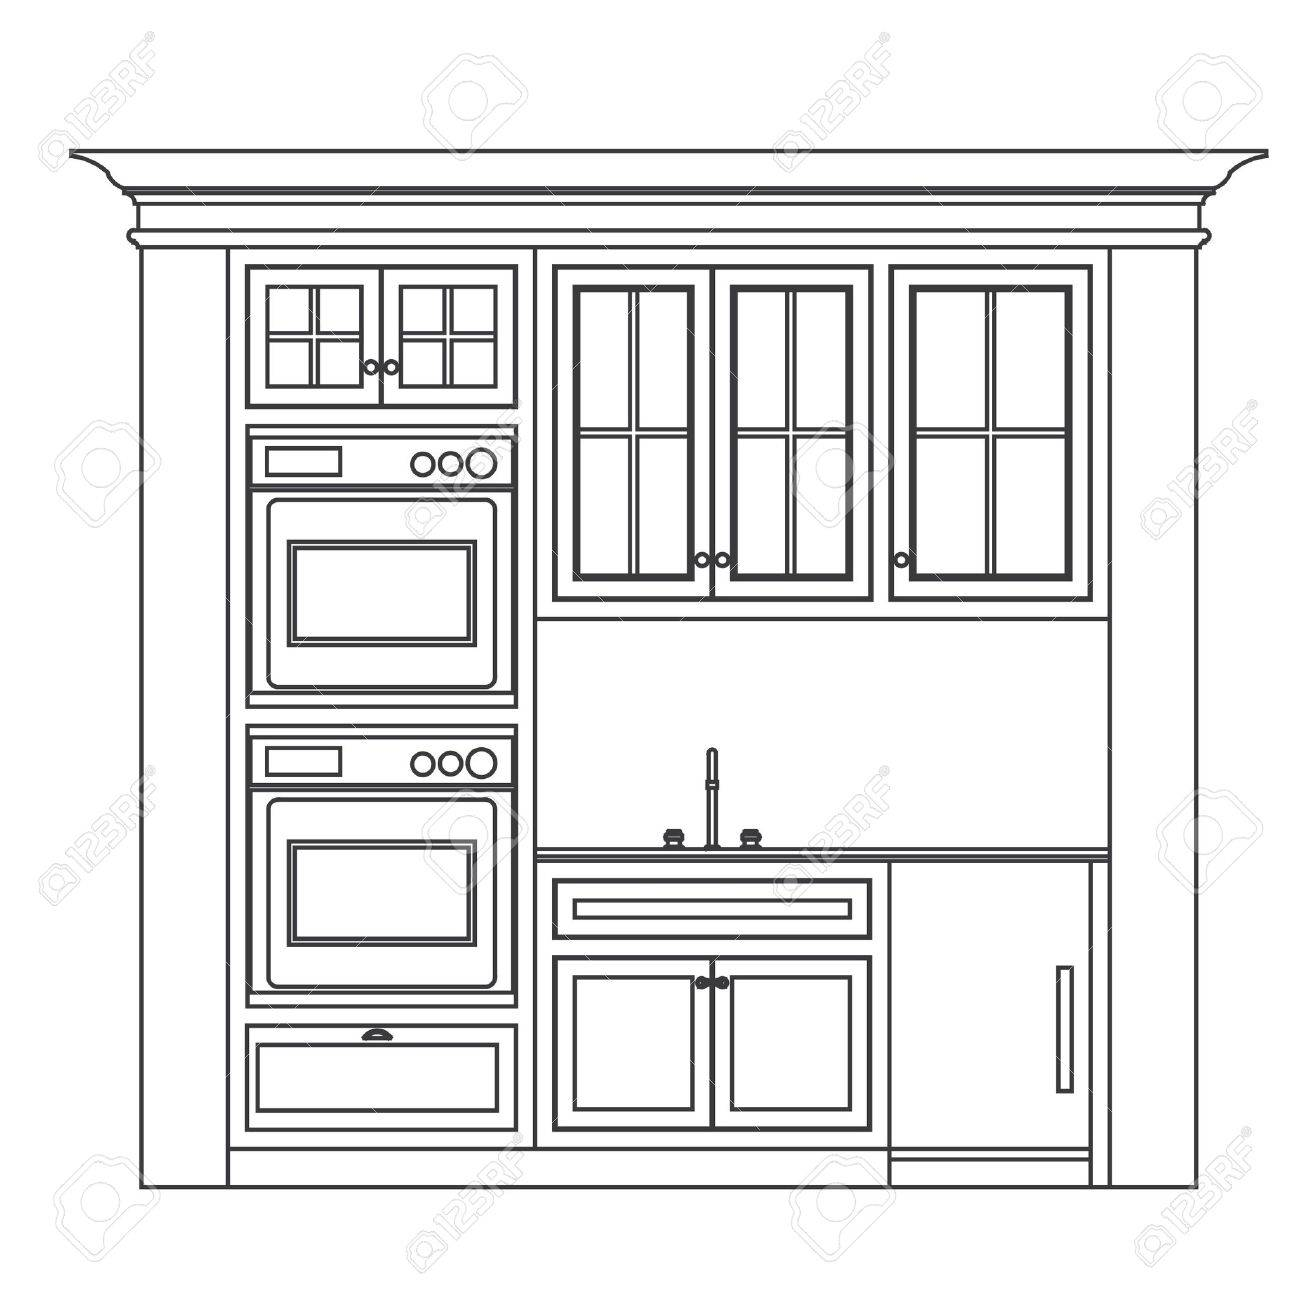 Kitchen Elevation Line Drawing Cabinets Drawers Appliances